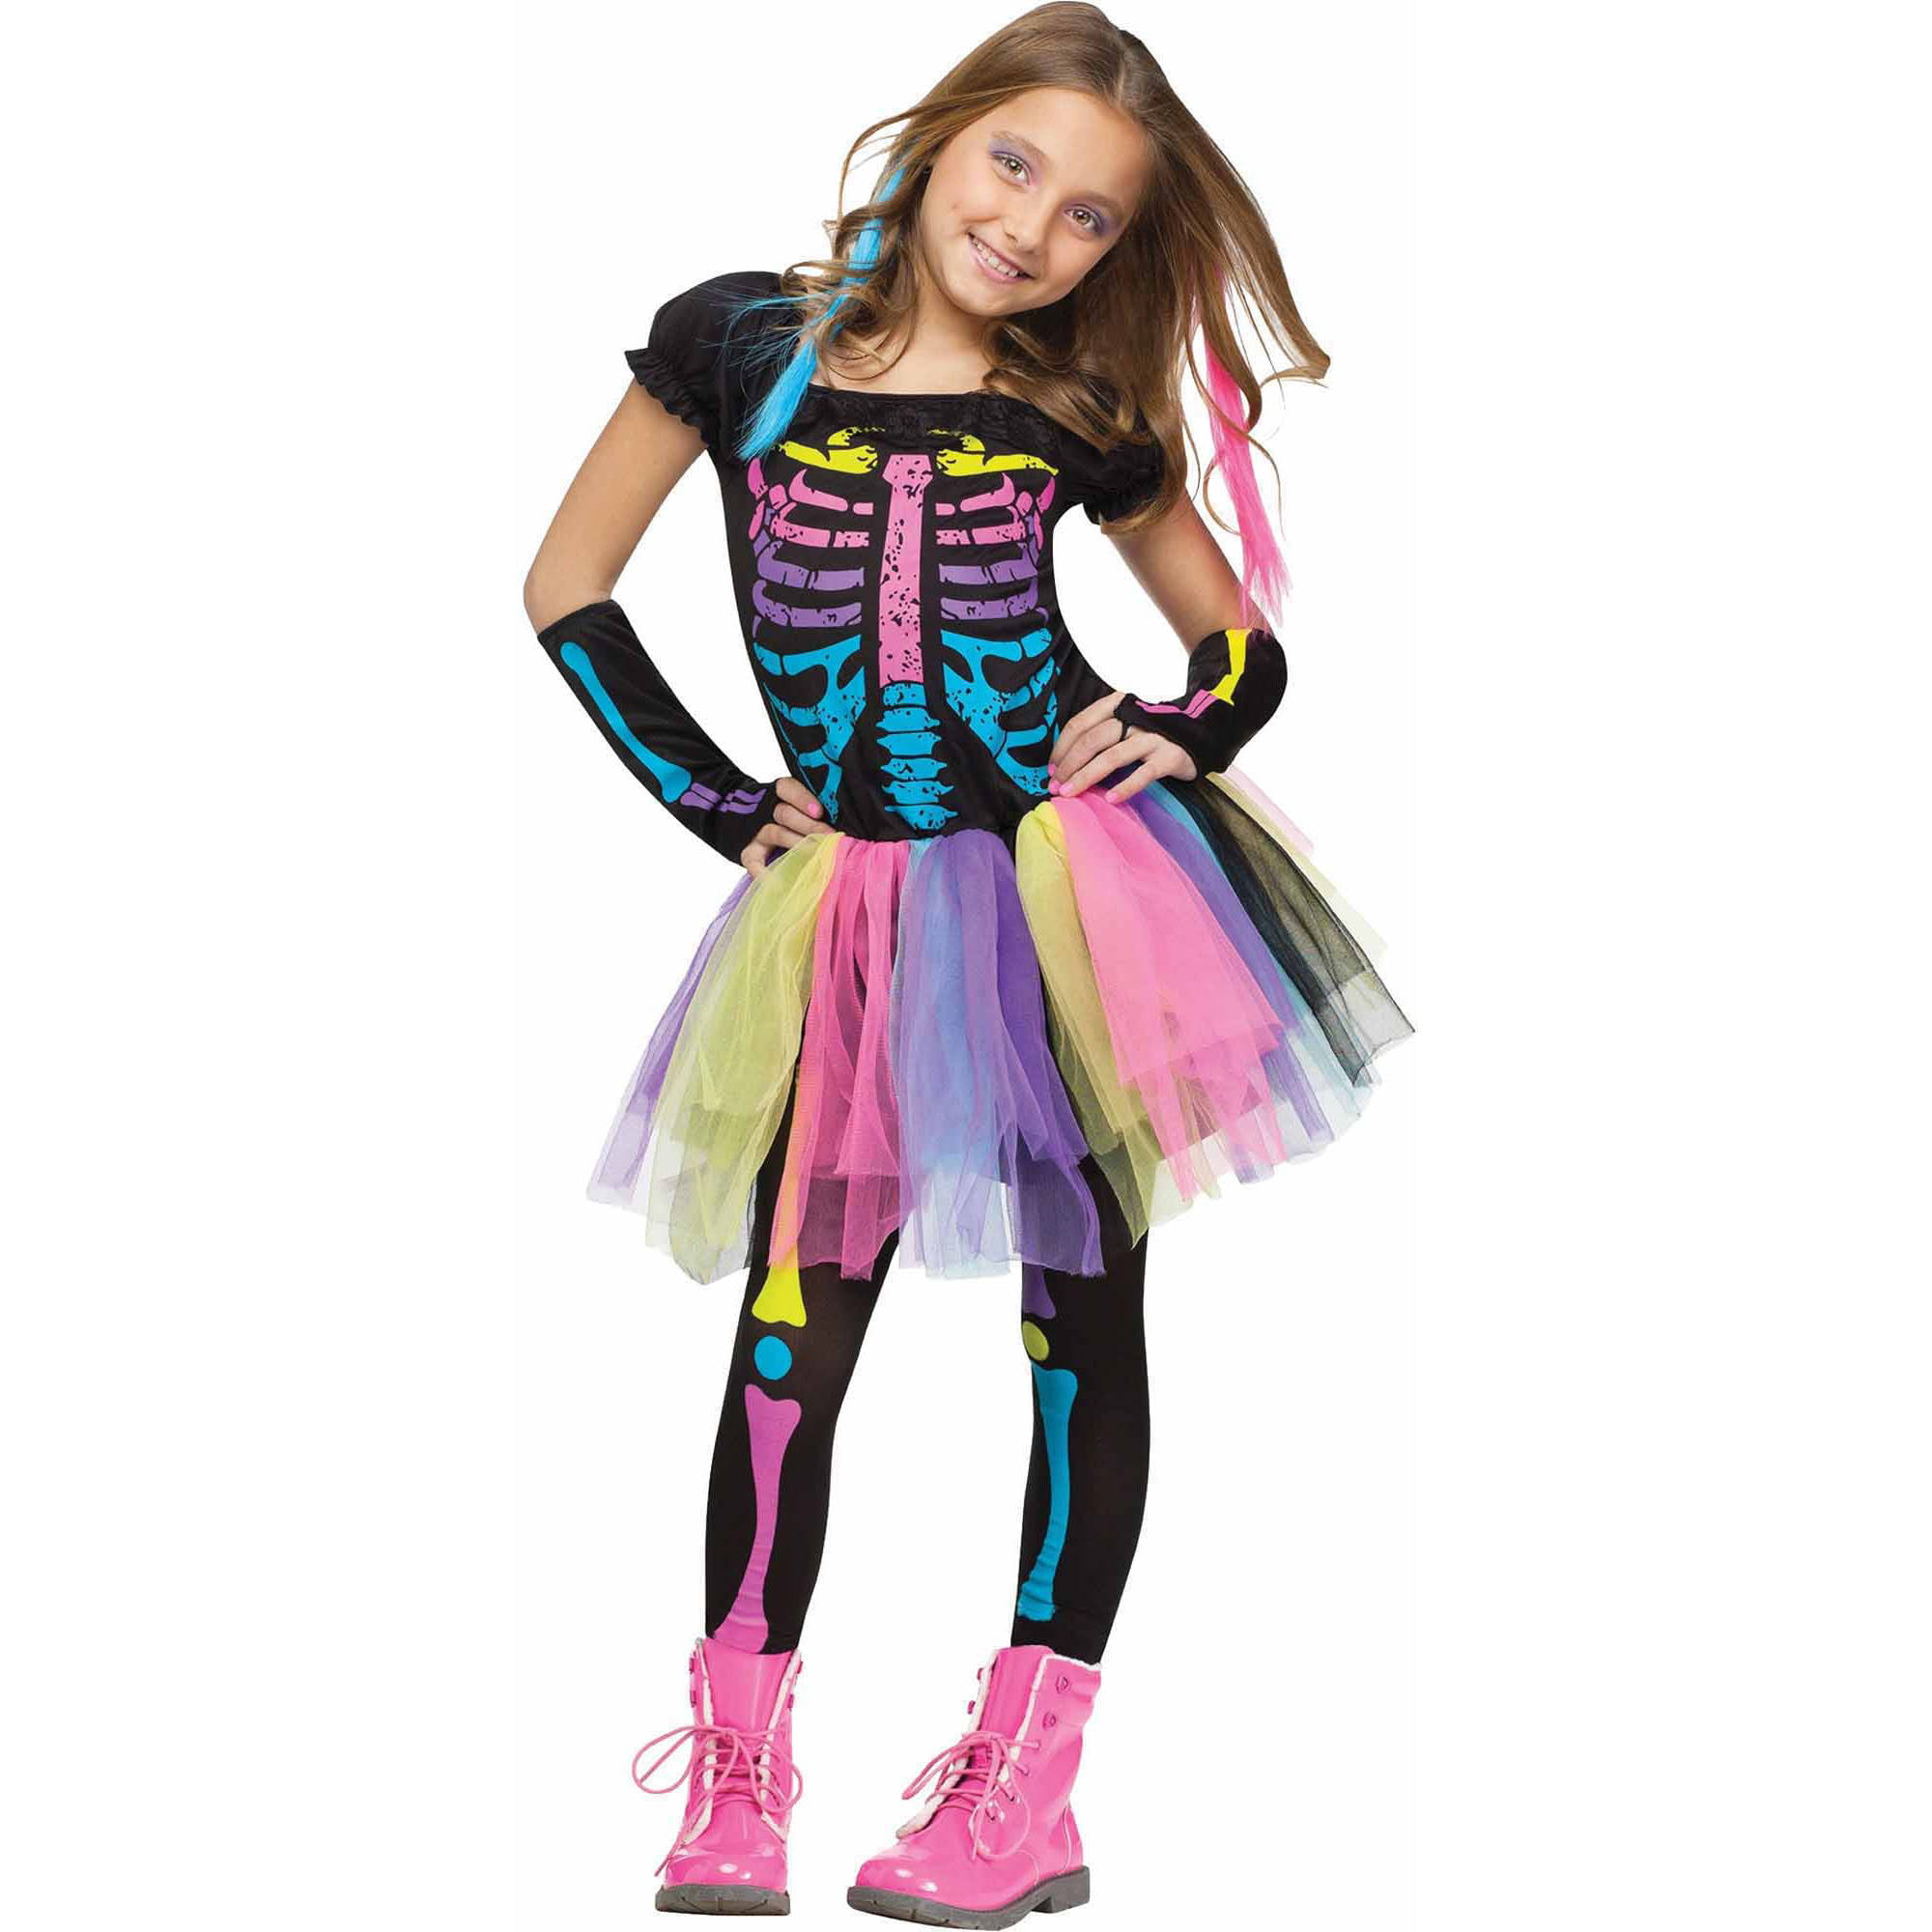 e3a13d1cc1fcb Funky Skeleton Costume & Sally Skelly Kids Costume Sc 1 St Pinterest